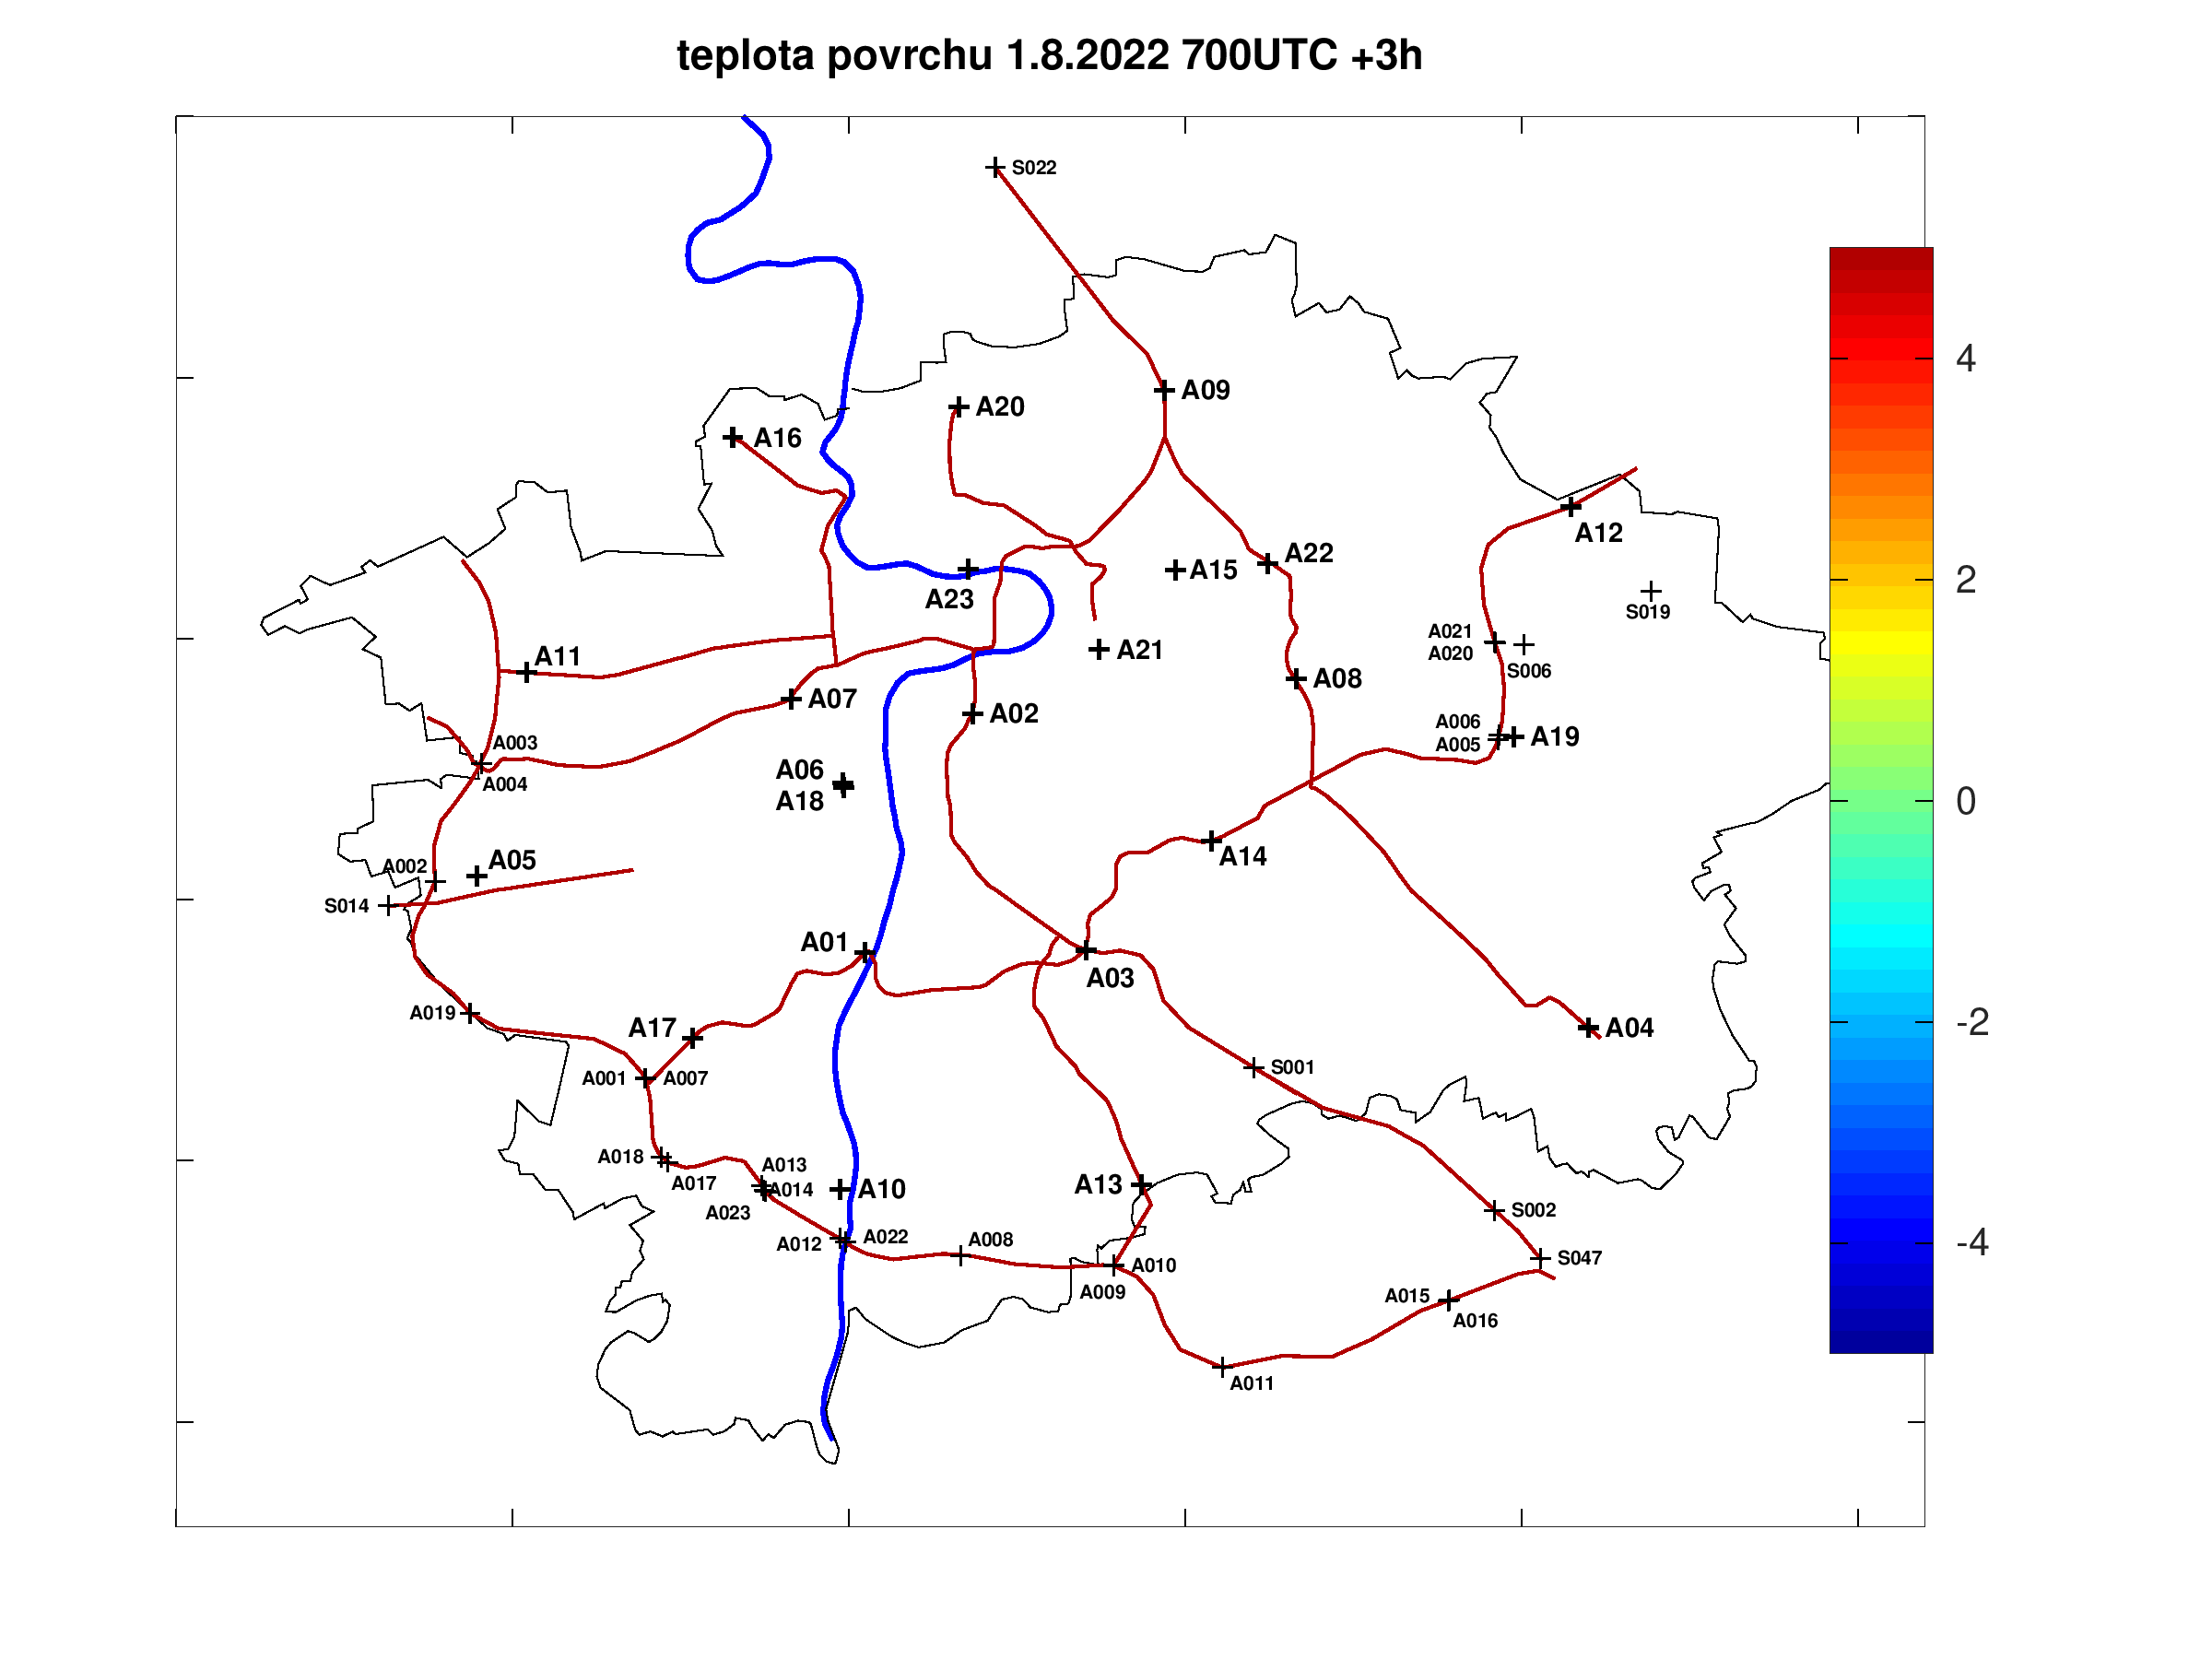 Road surface teperature forecast for Prague +3h